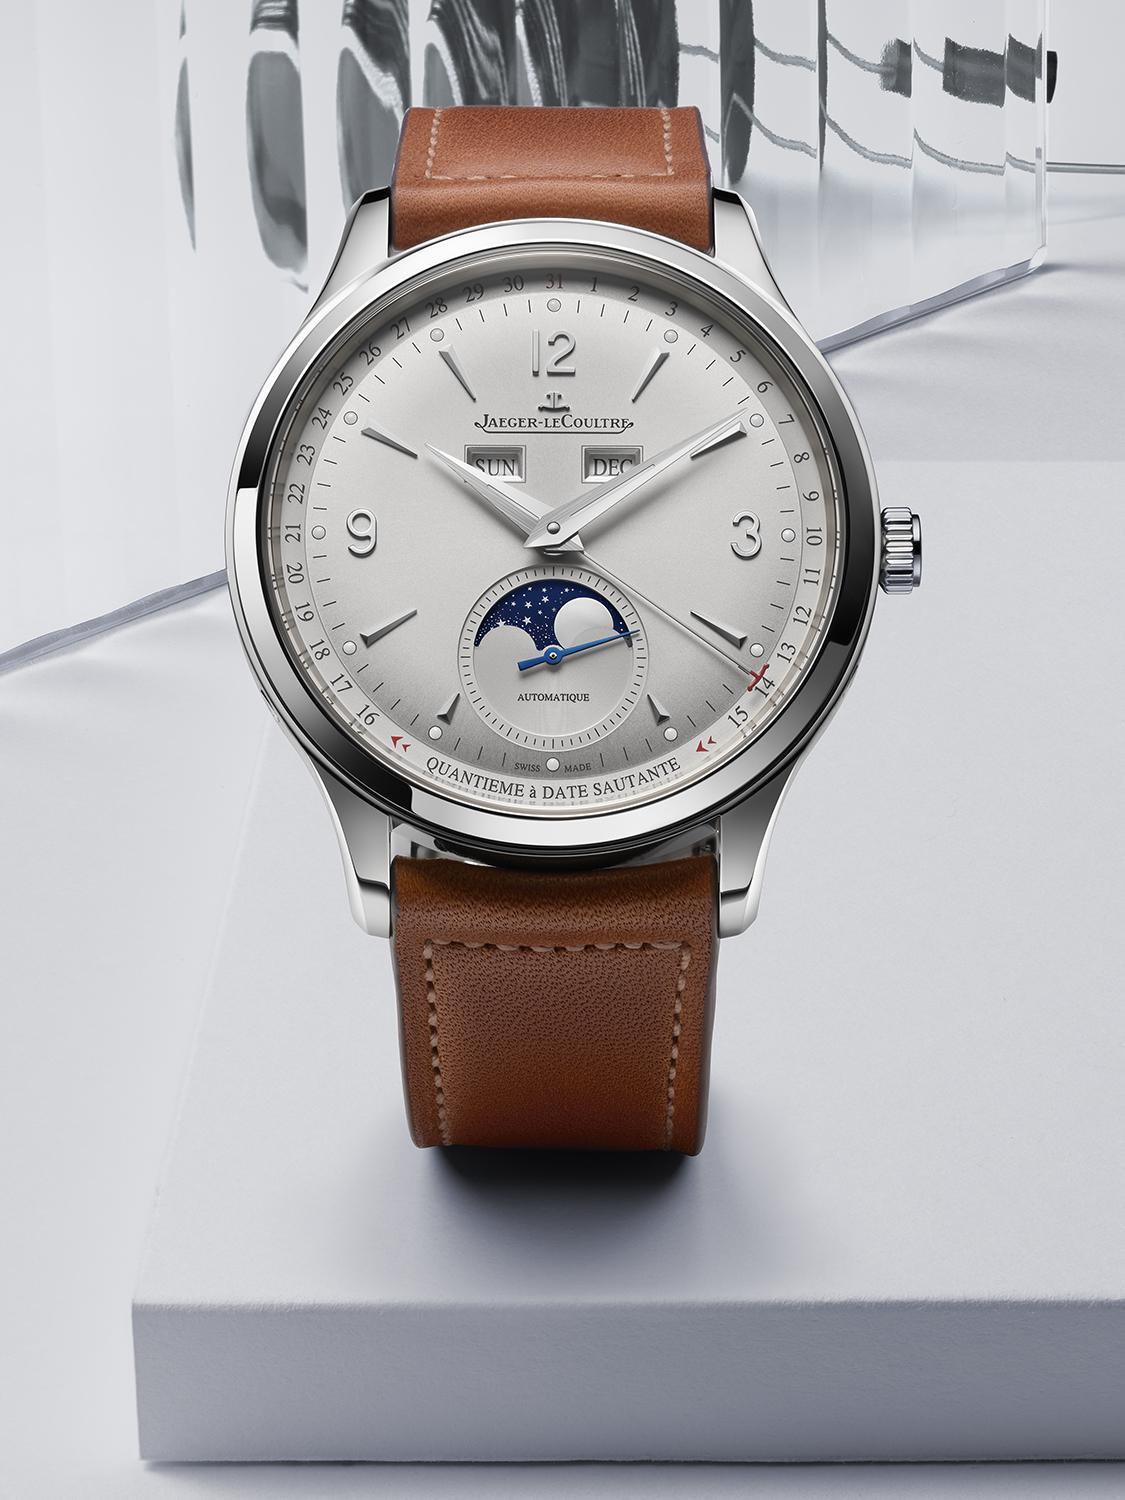 New 2020 Jaeger-LeCoultre Master Control calendar Watches